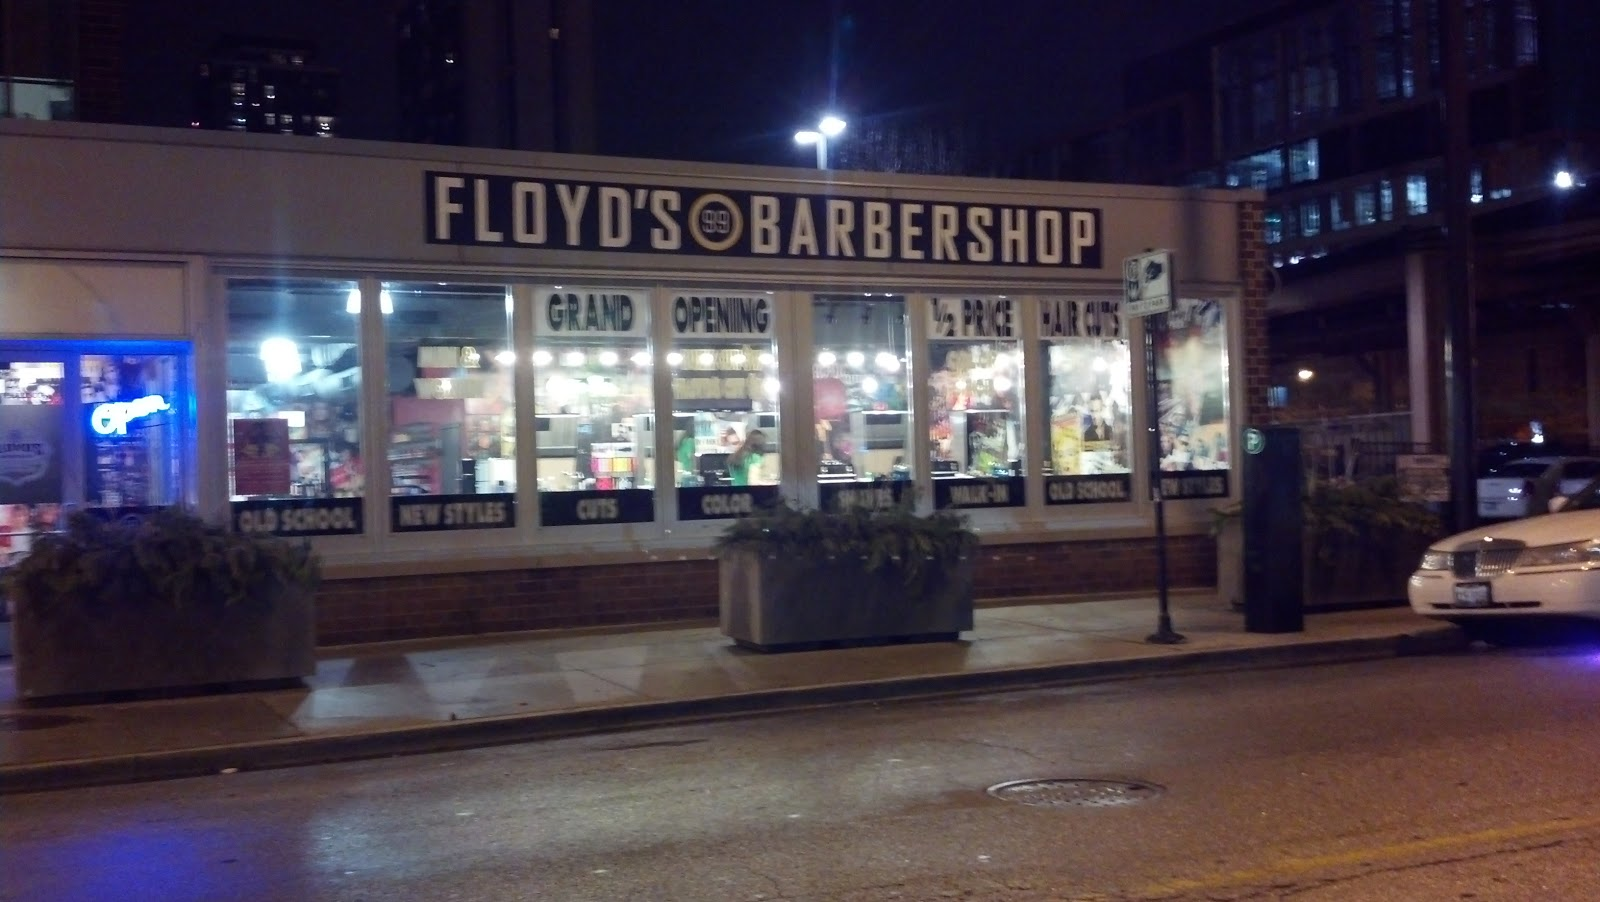 Floyds 99 Barbershop Opens Donnas Cafe Closes Until Further Notice